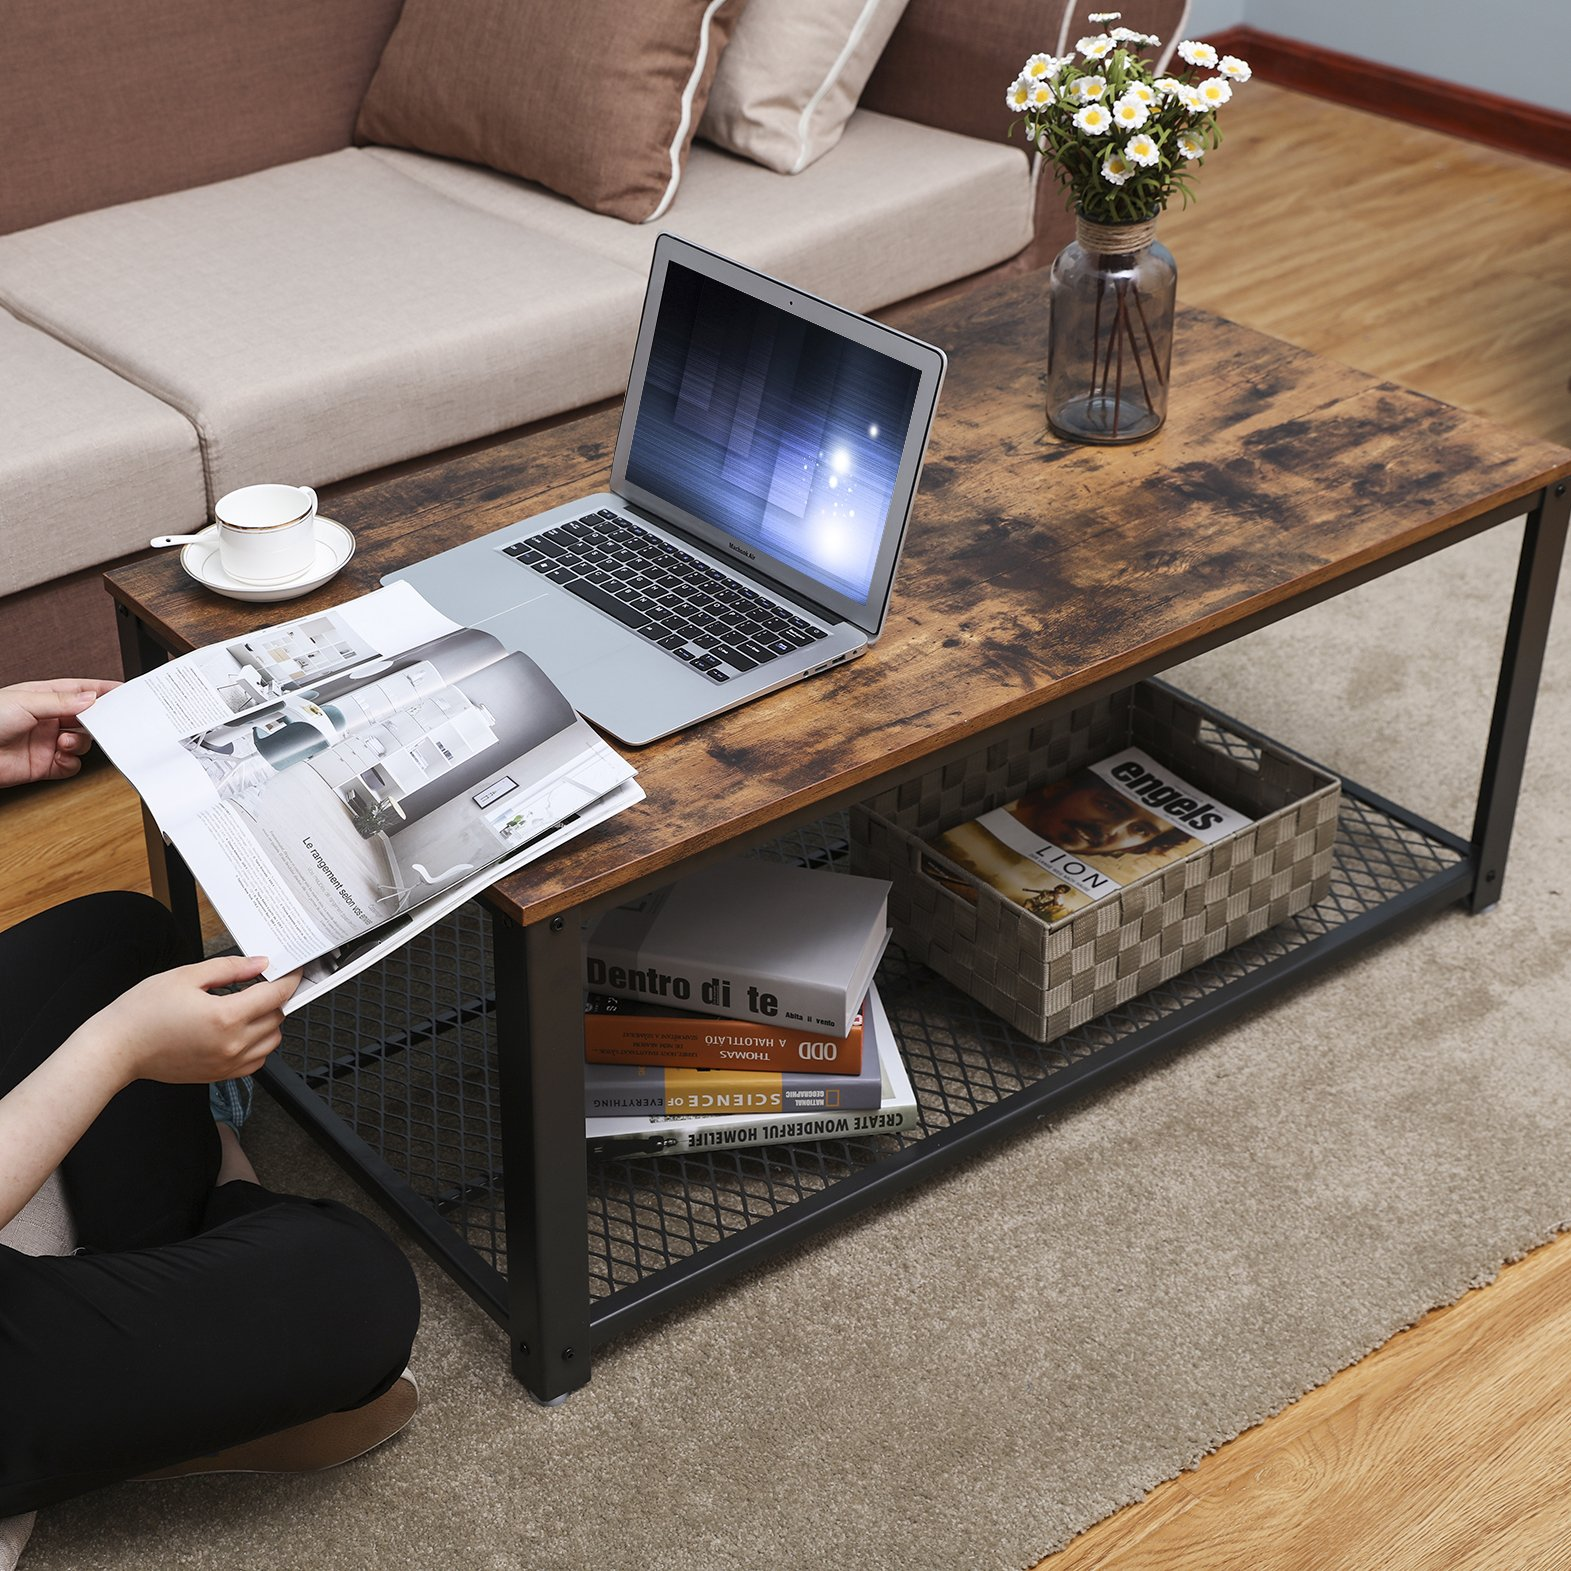 SONGMICS Vintage Coffee Table, Cocktail Table with Storage Shelf for Living Room, Wood Look Accent Furniture with Metal Frame, Easy Assembly ULCT61X by SONGMICS (Image #2)